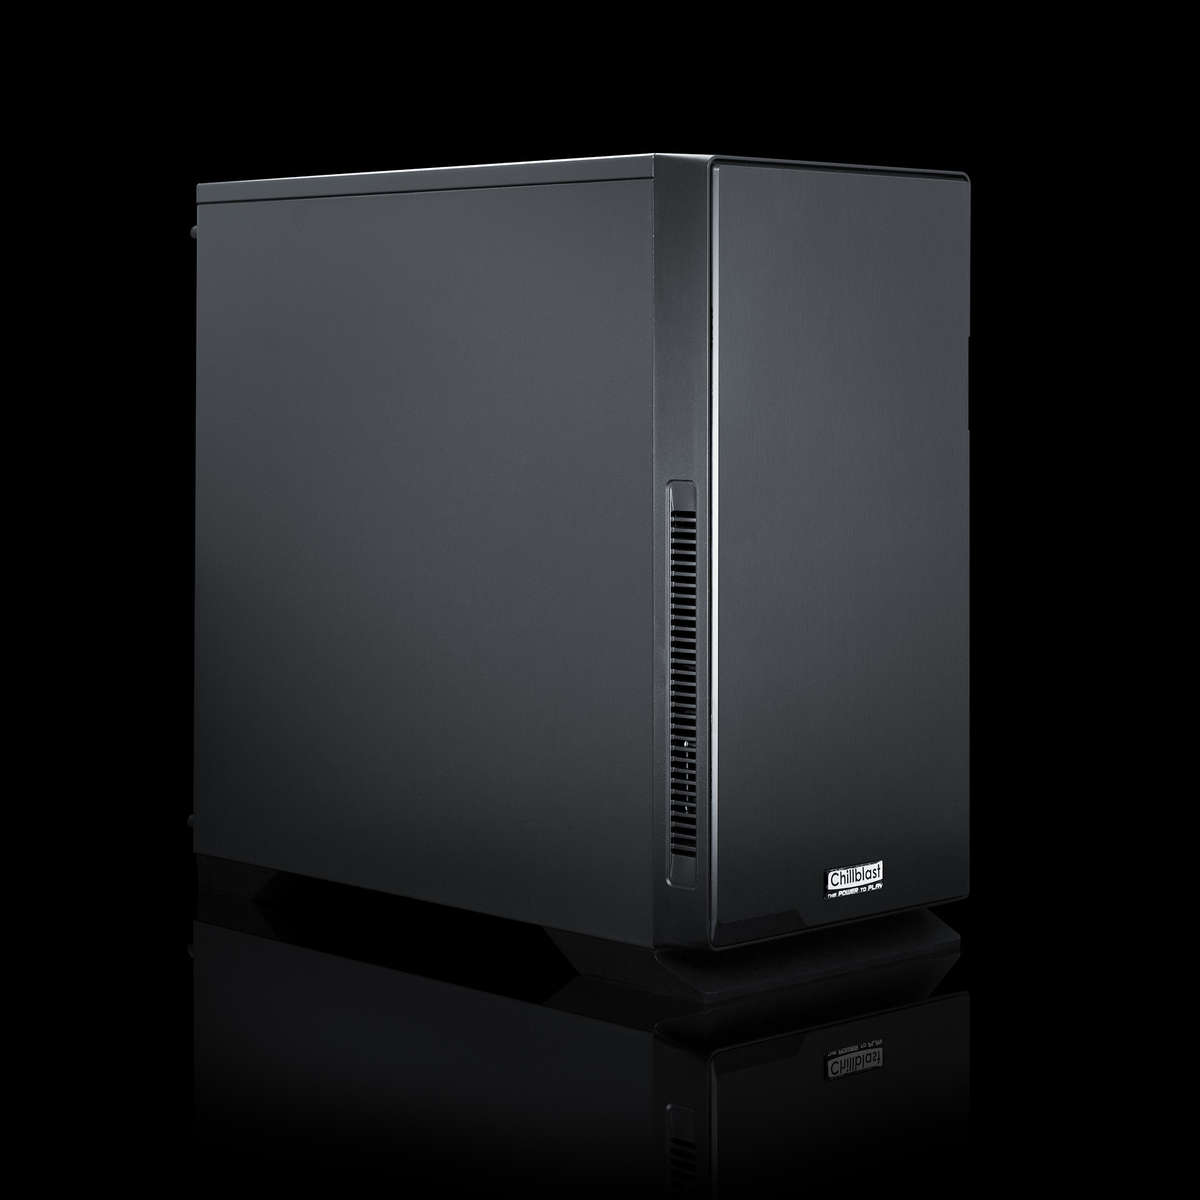 Chillblast Prestige i7 8700 Office PC